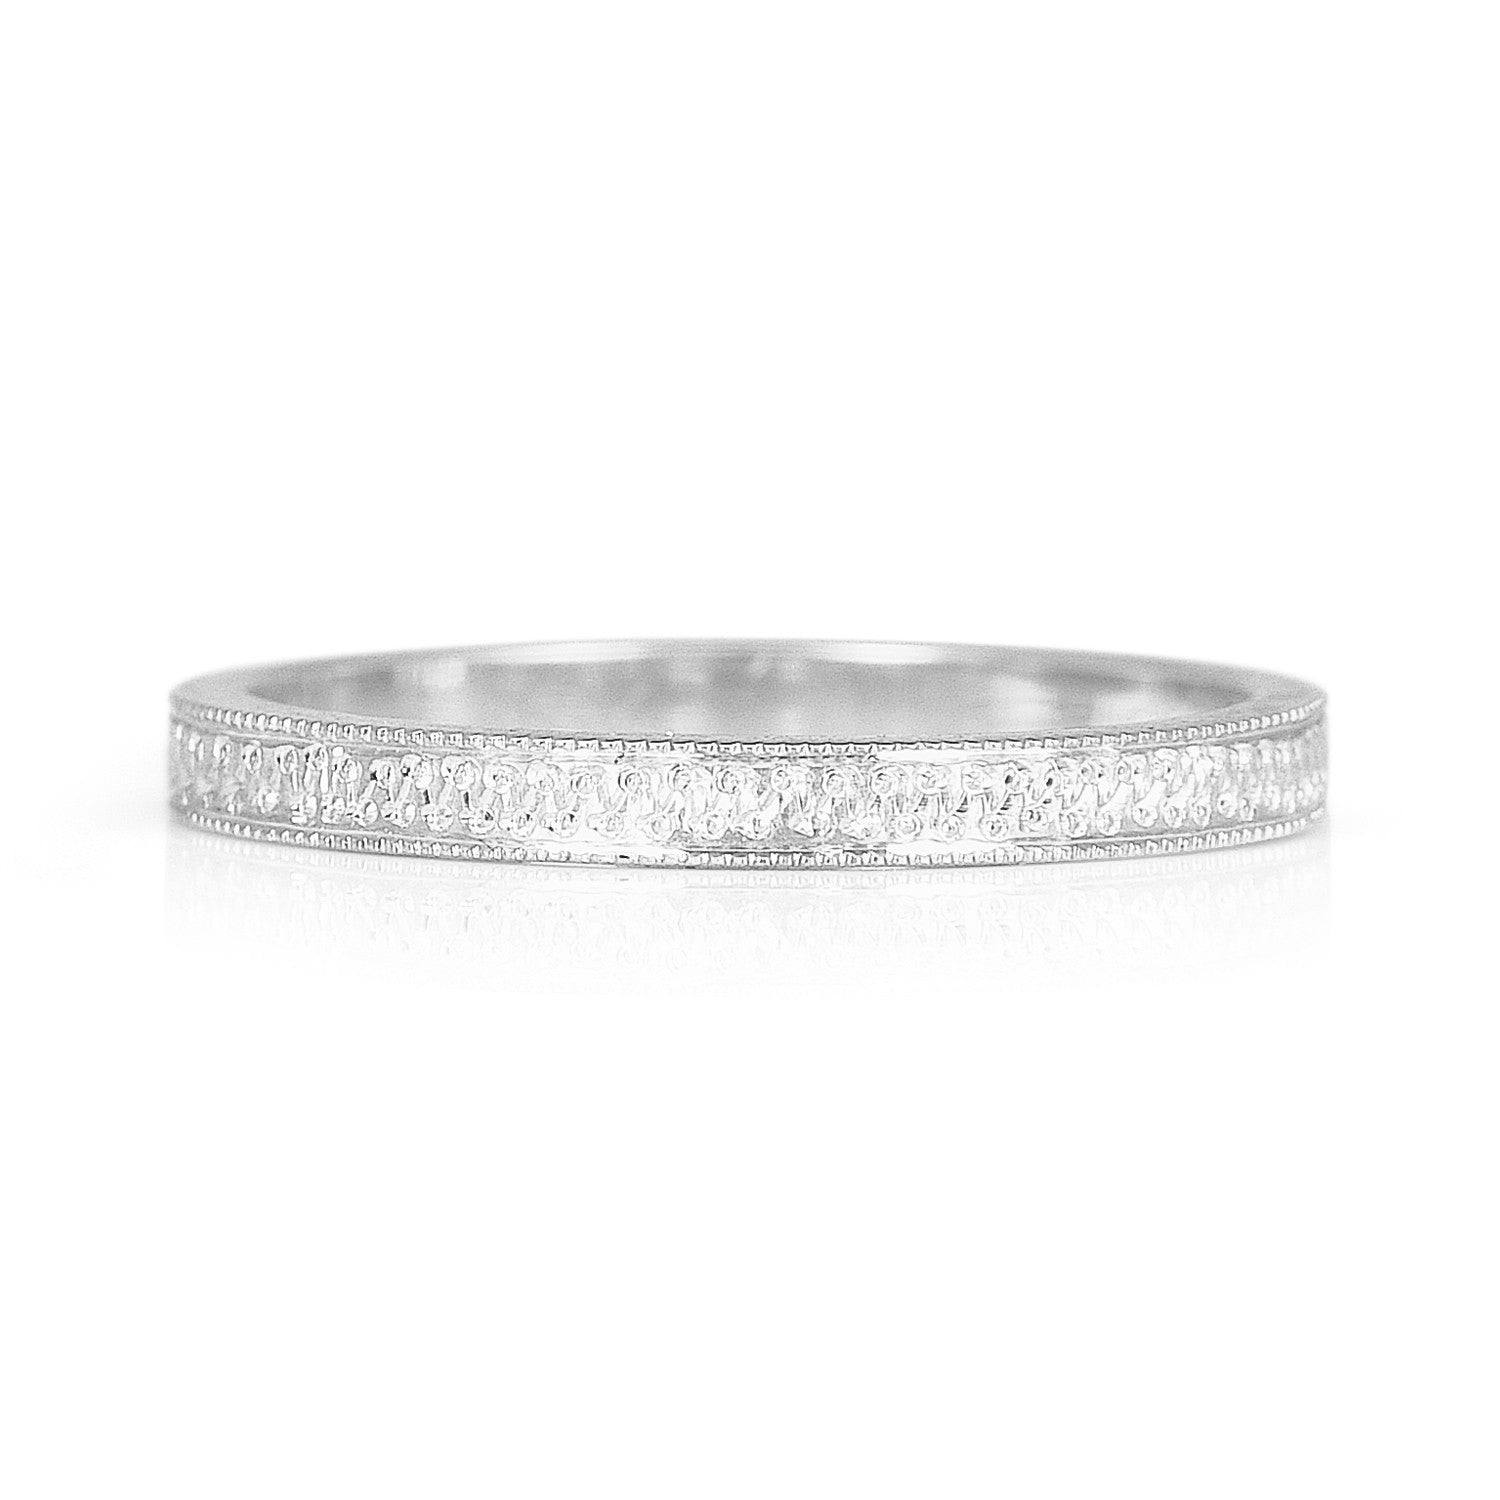 Eternity Engraved Ethical Platinum Wedding Ring